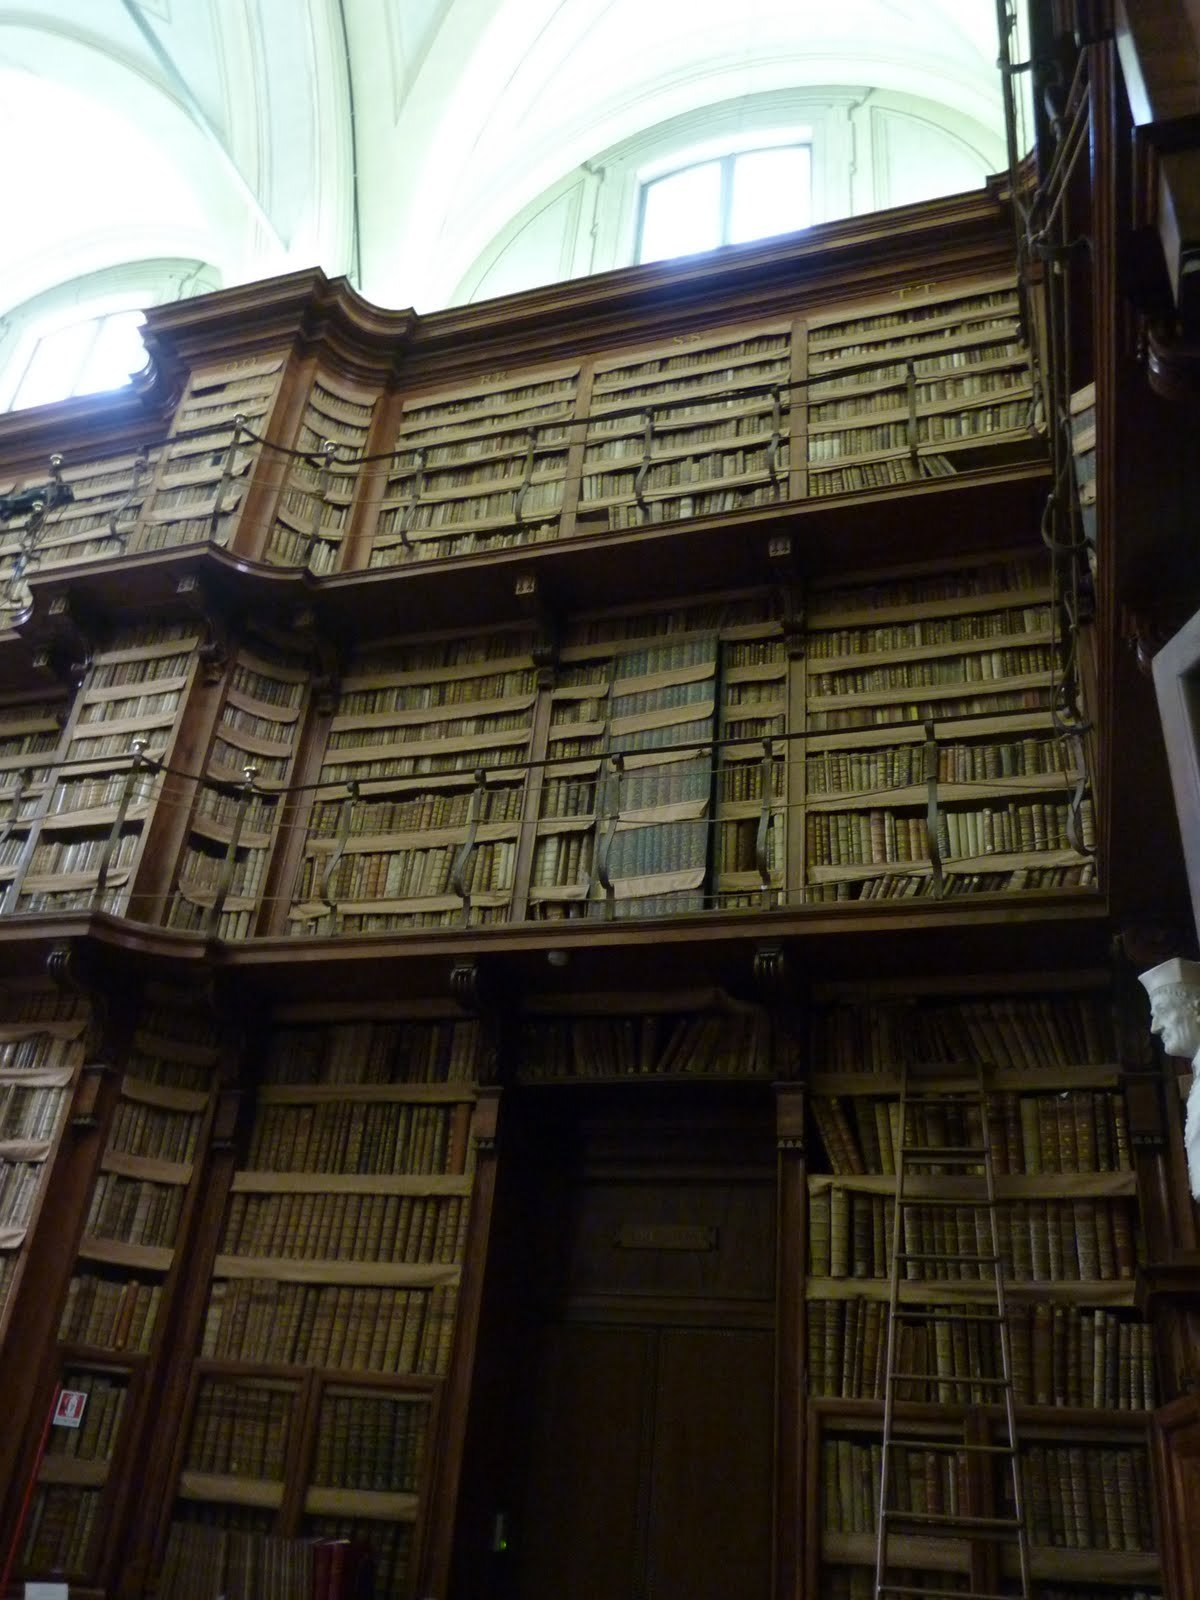 Spot the secret door - Biblioteca Angelica, Rome.